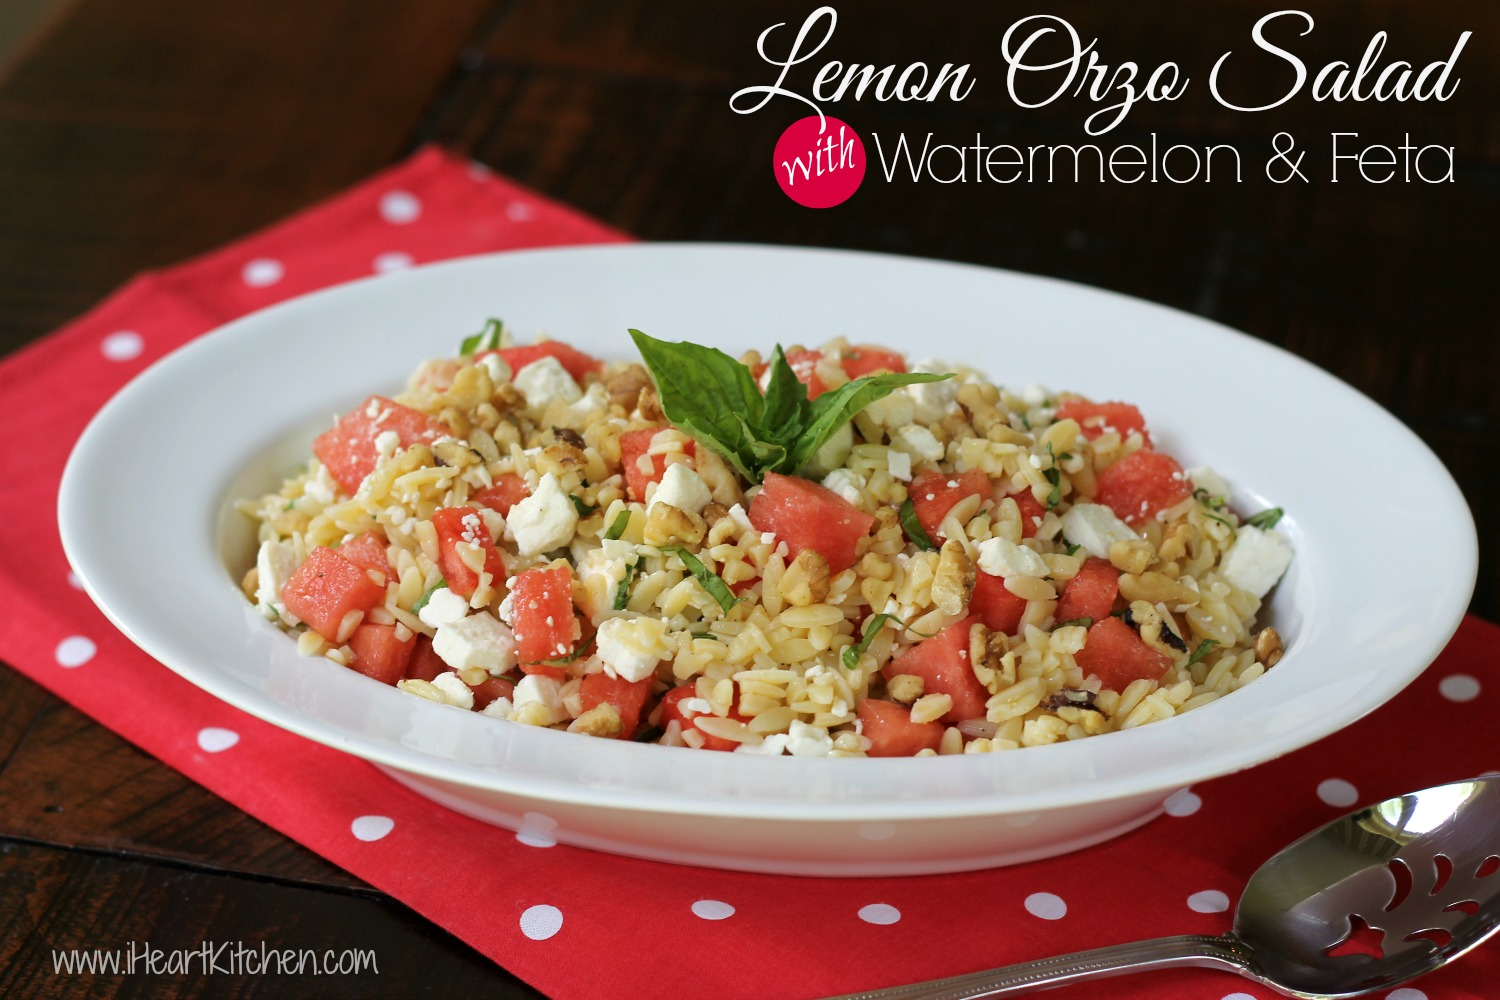 Lemon Orzo Salad with Watermelon and Feta Lemon Orzo Salad with Watermelon & Feta   Publix Menu Plan Recipe